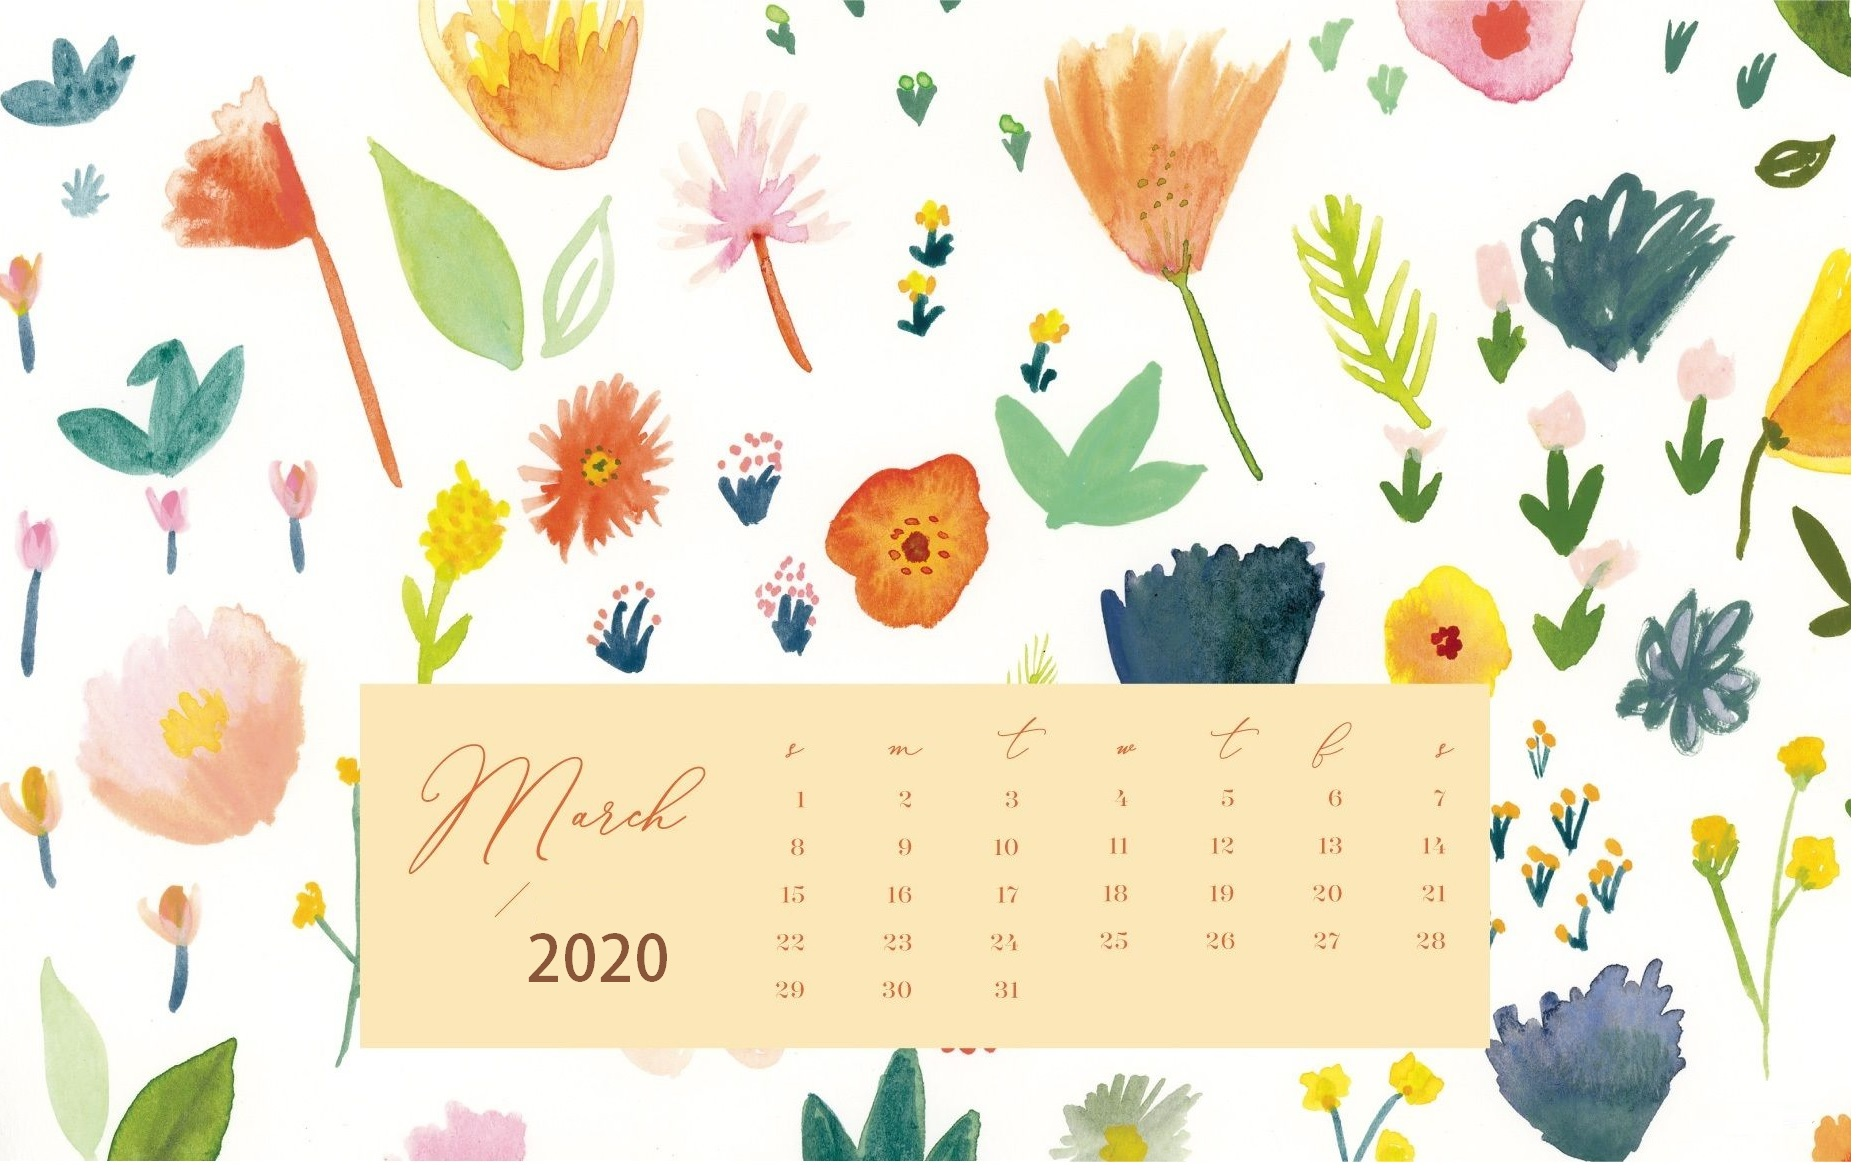 March 2020 Desktop Wallpaper